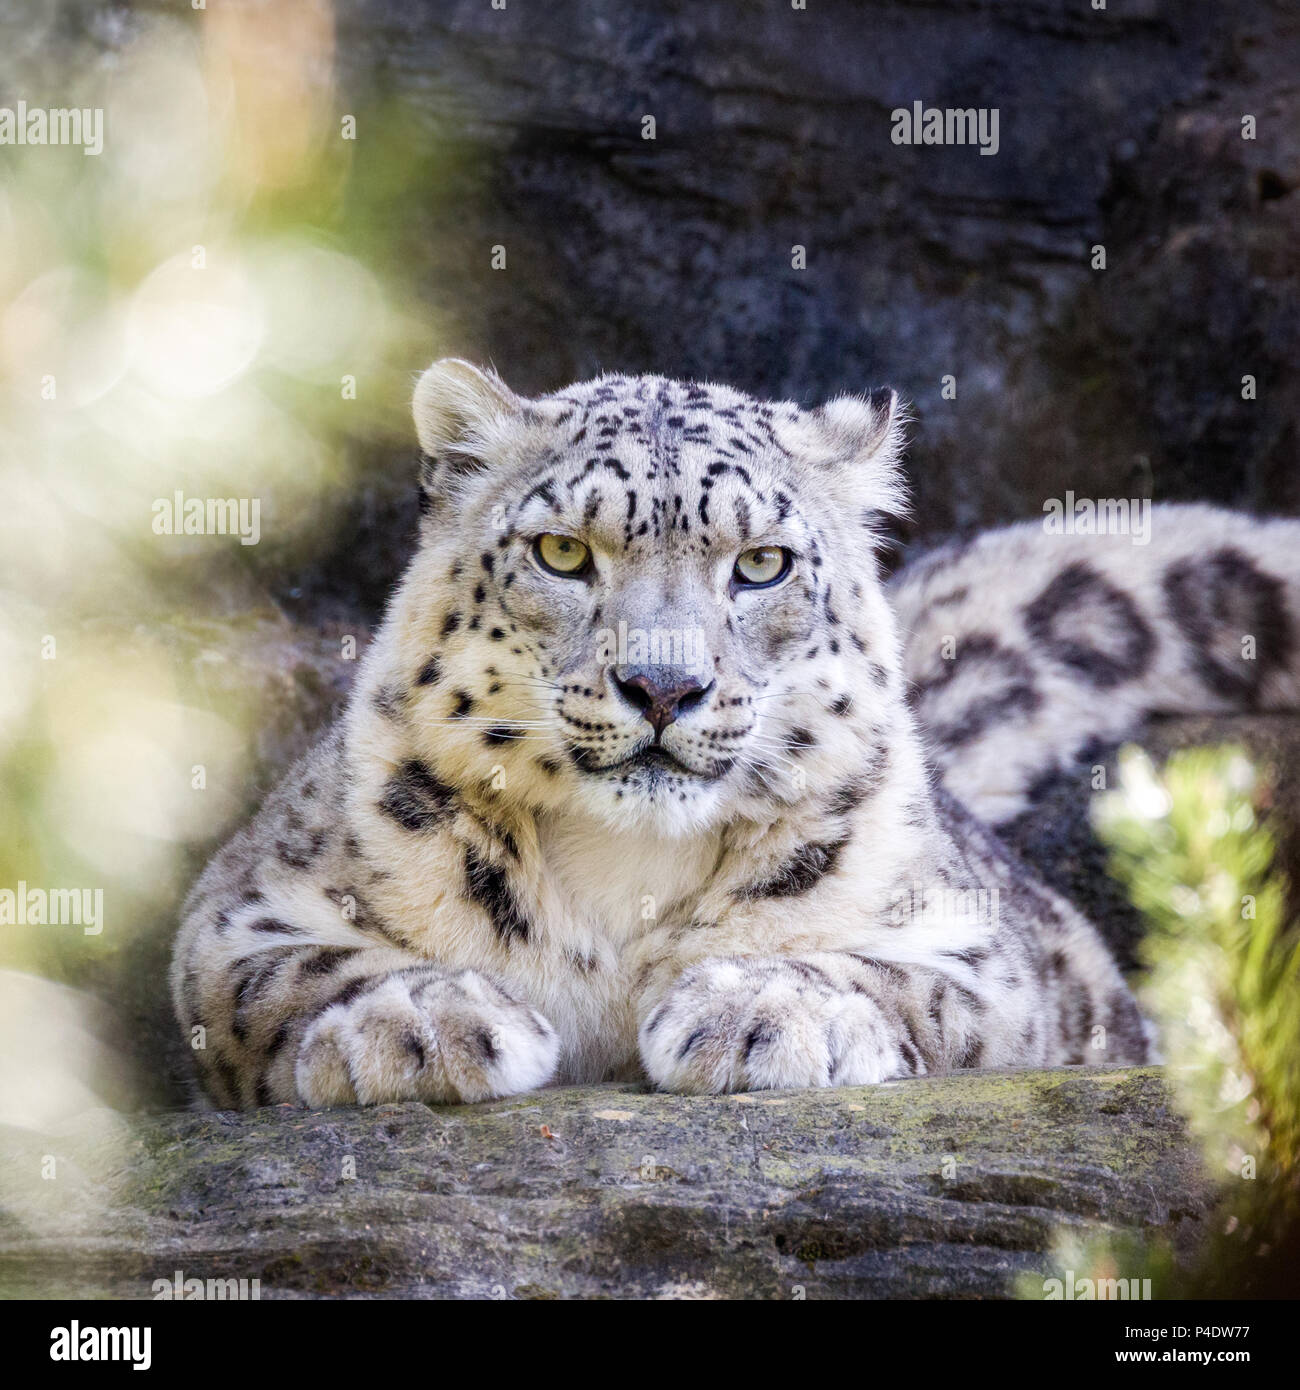 Attentive snow leopard keeps a watchful eye through the foliage. - Stock Image